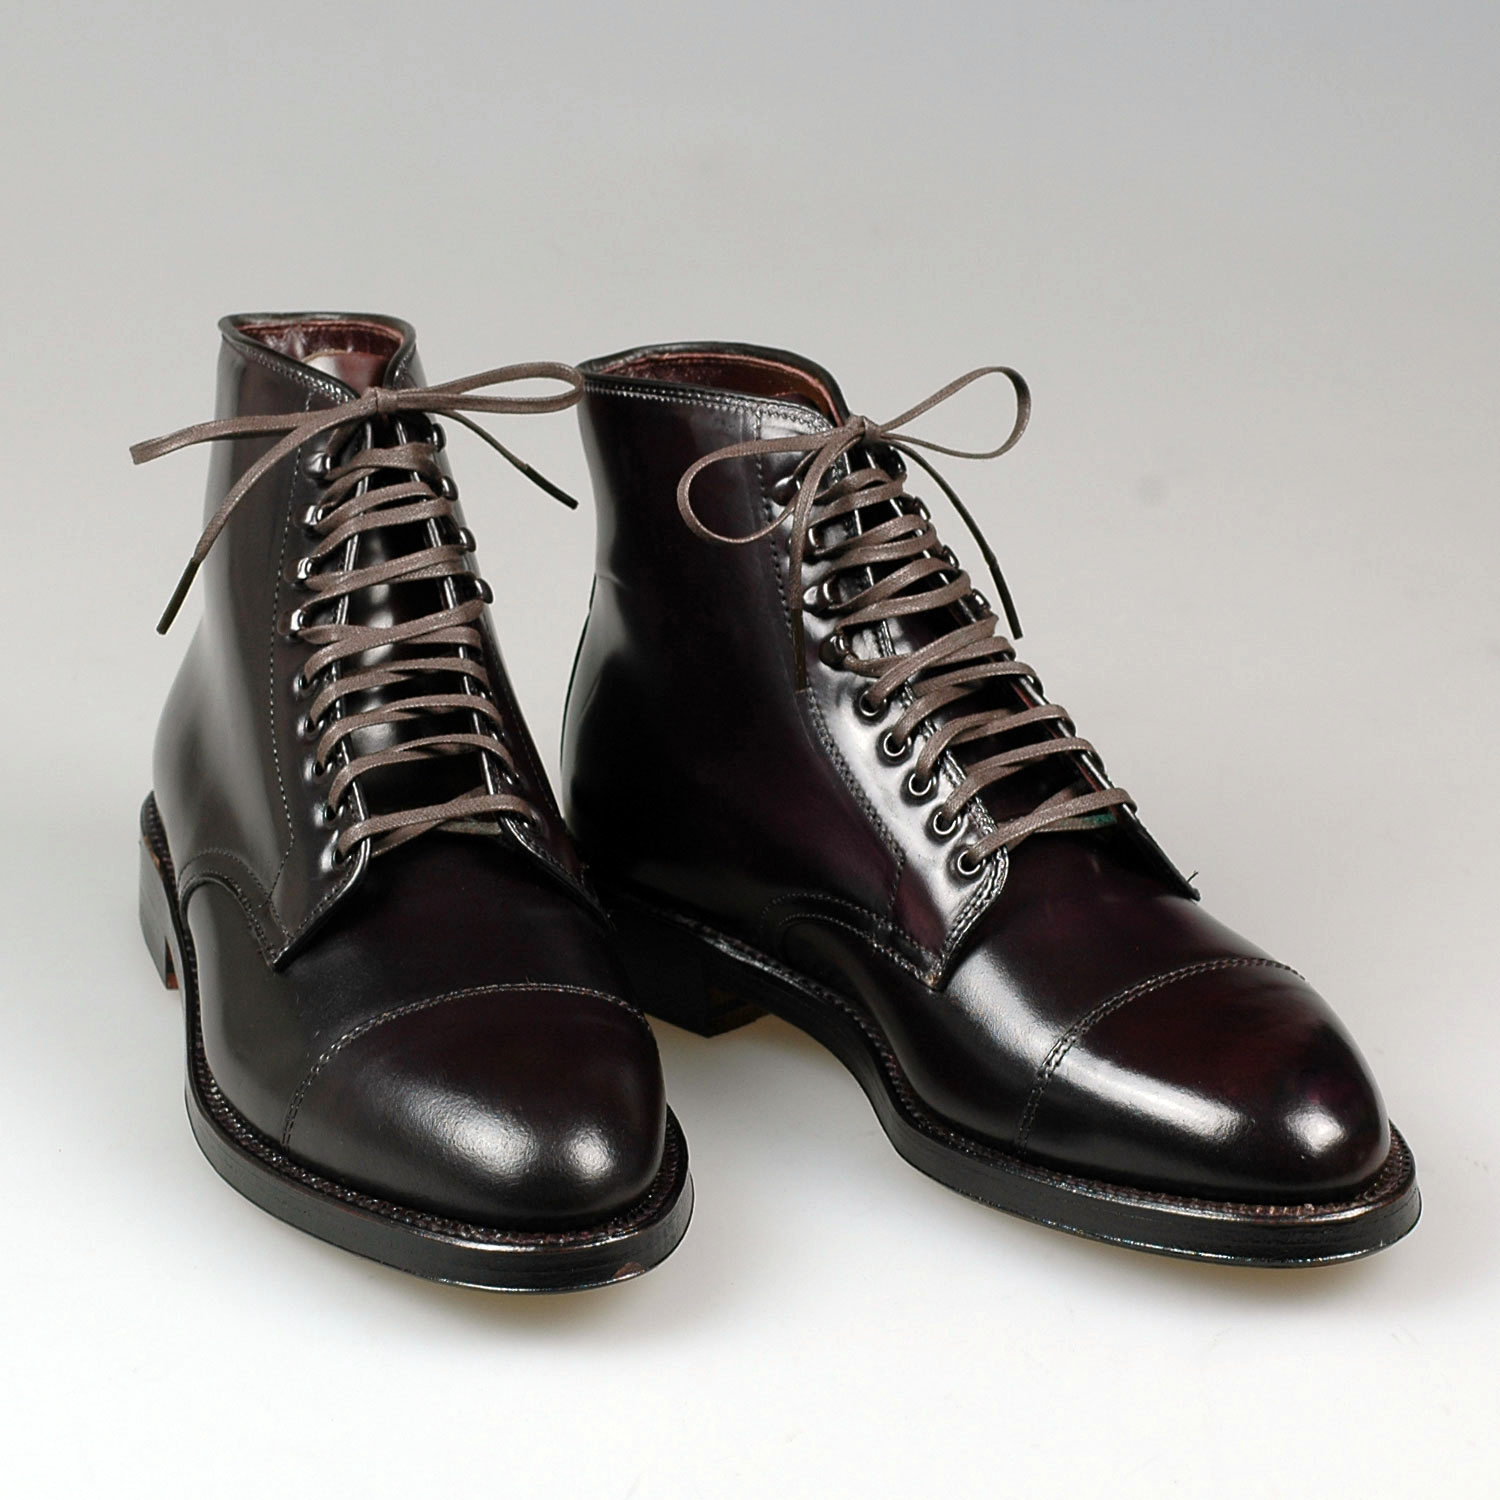 alden navy boot shoes shoes shoes shirts